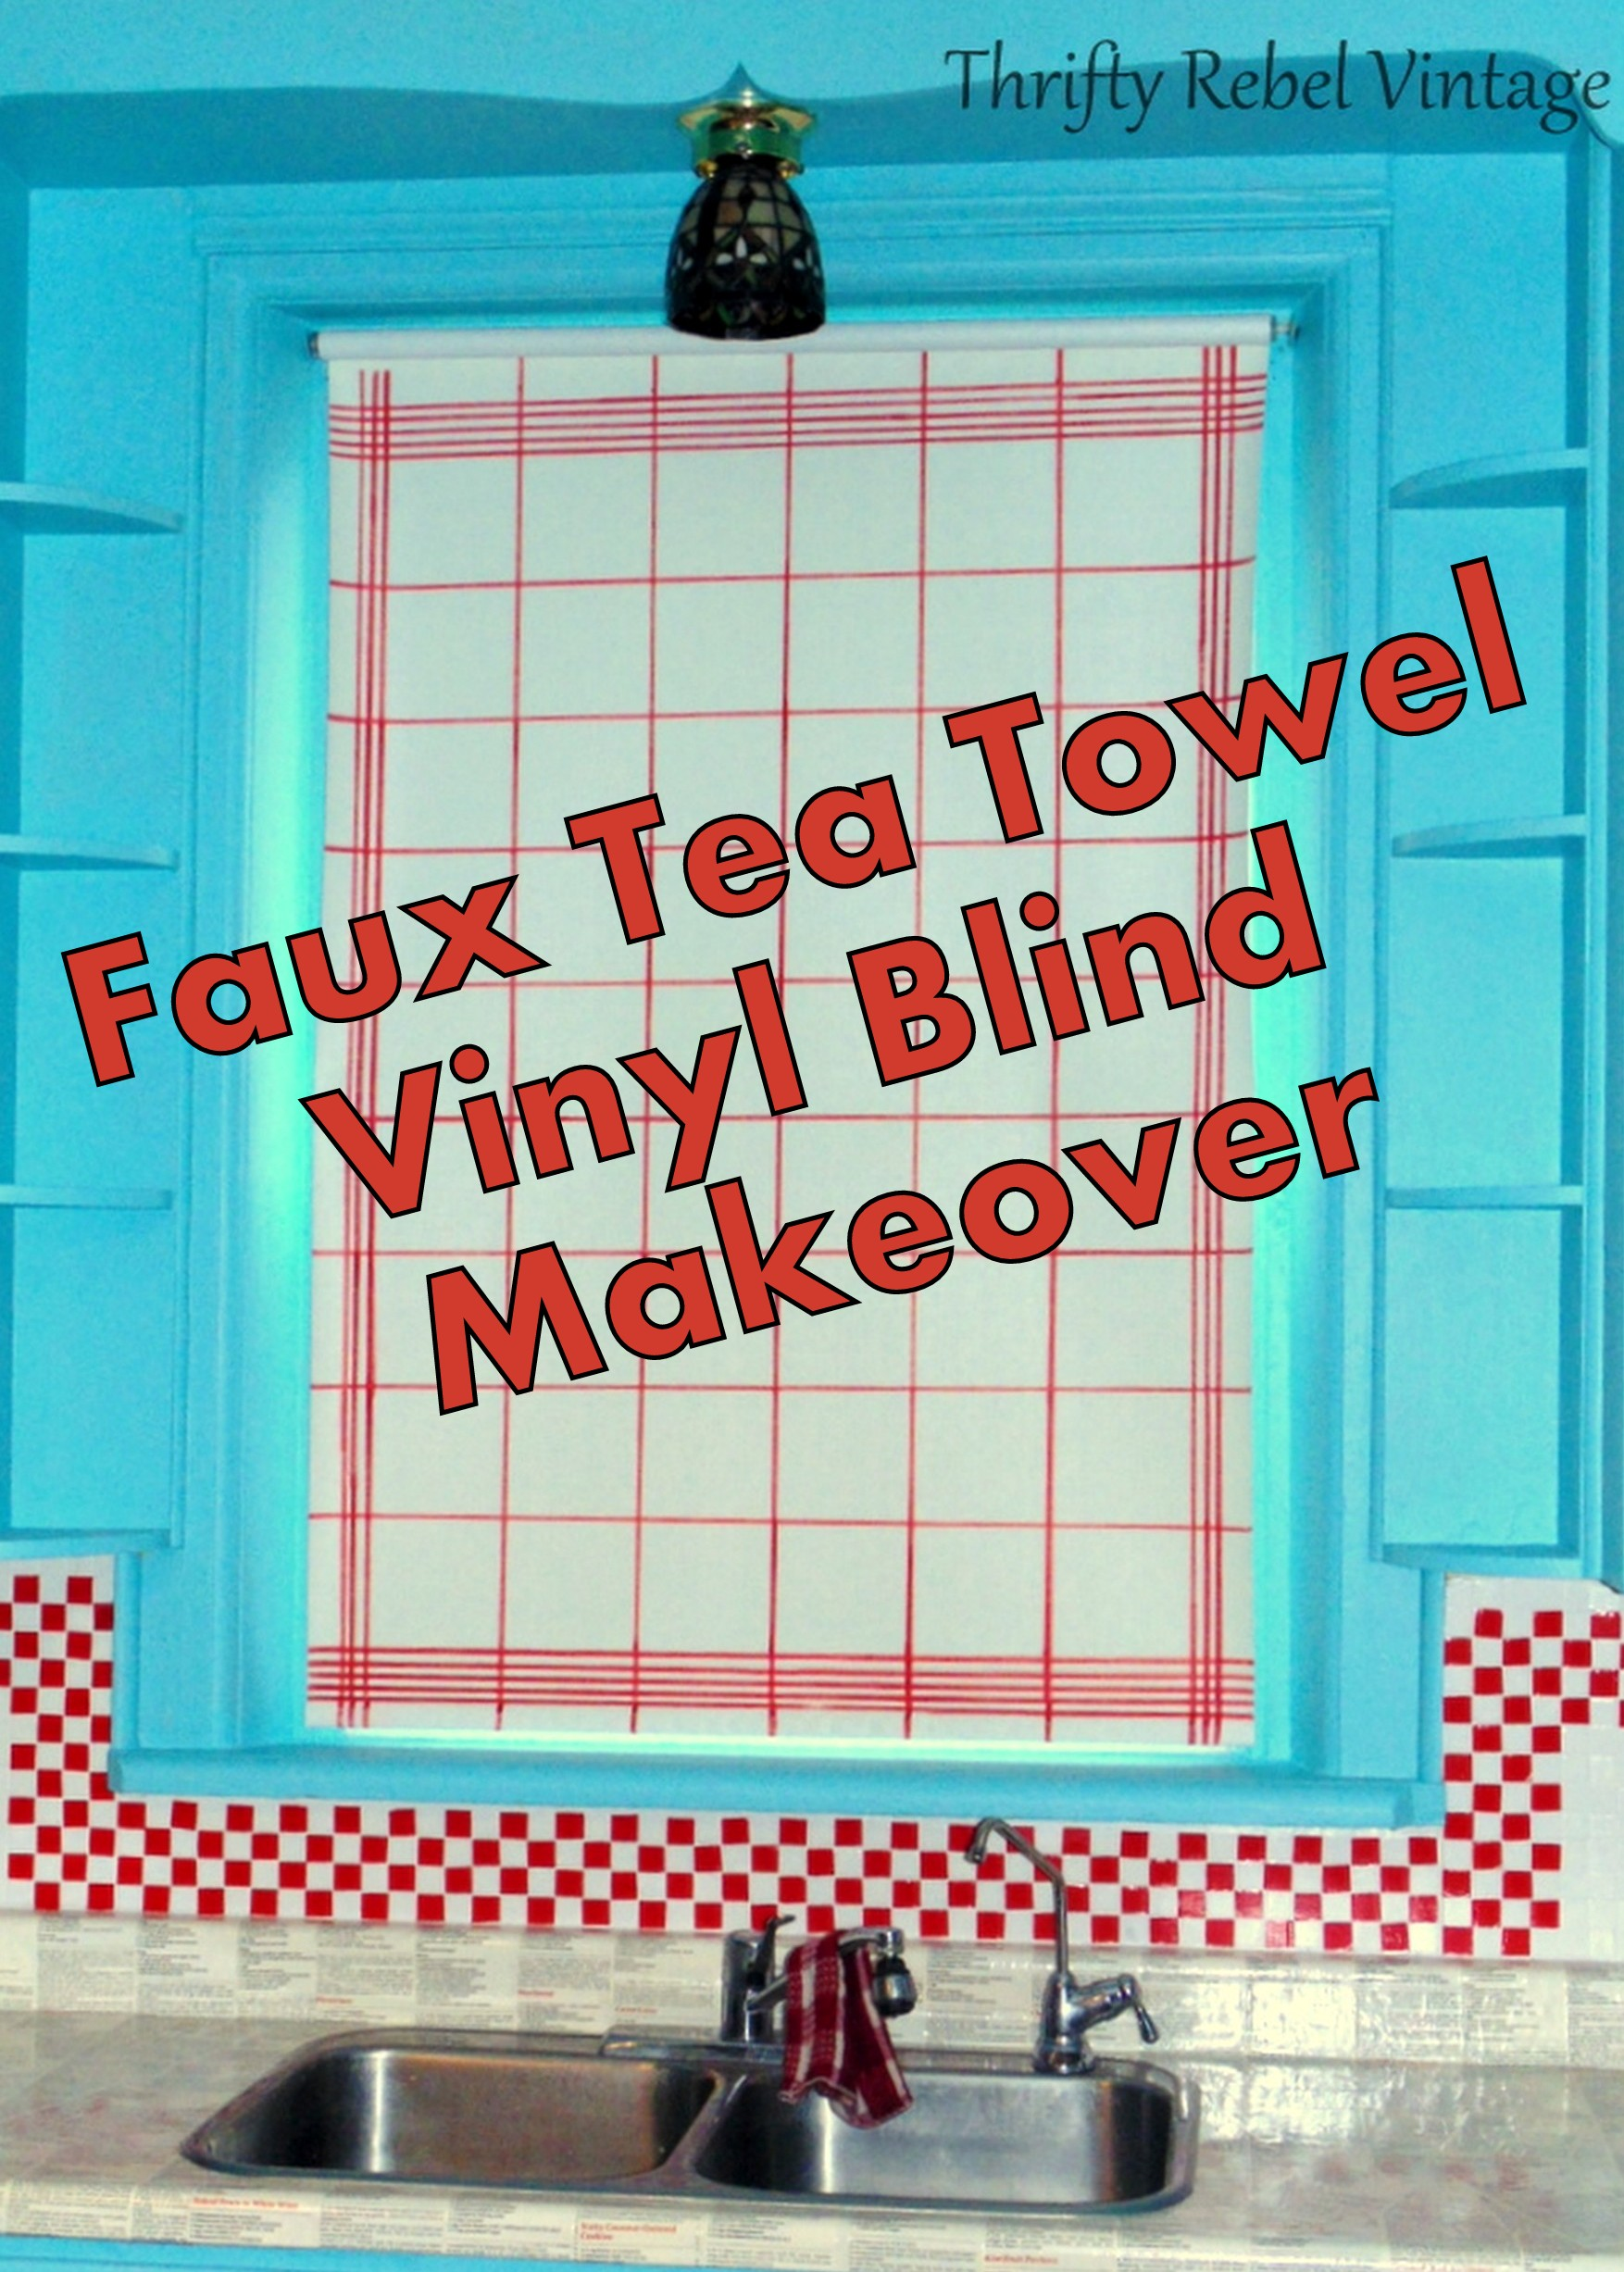 Faux tea towel vinyl blind makeover